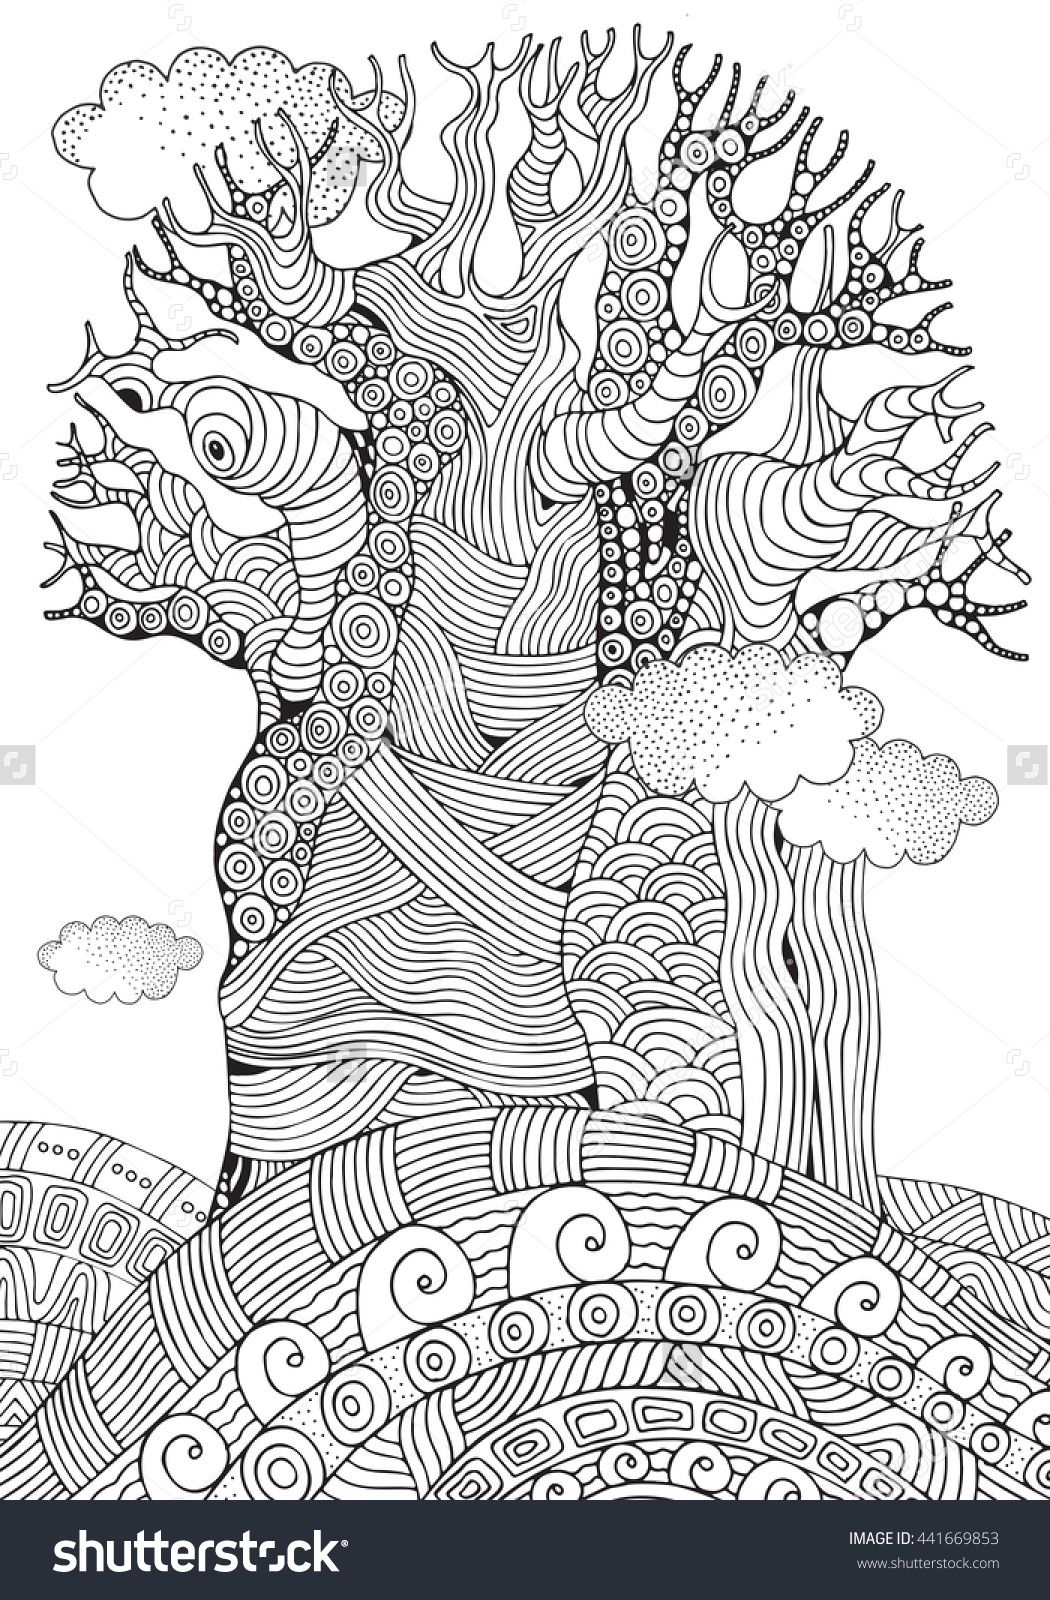 Baobab Tree Coloring Page For Adults Zentangle 441669853